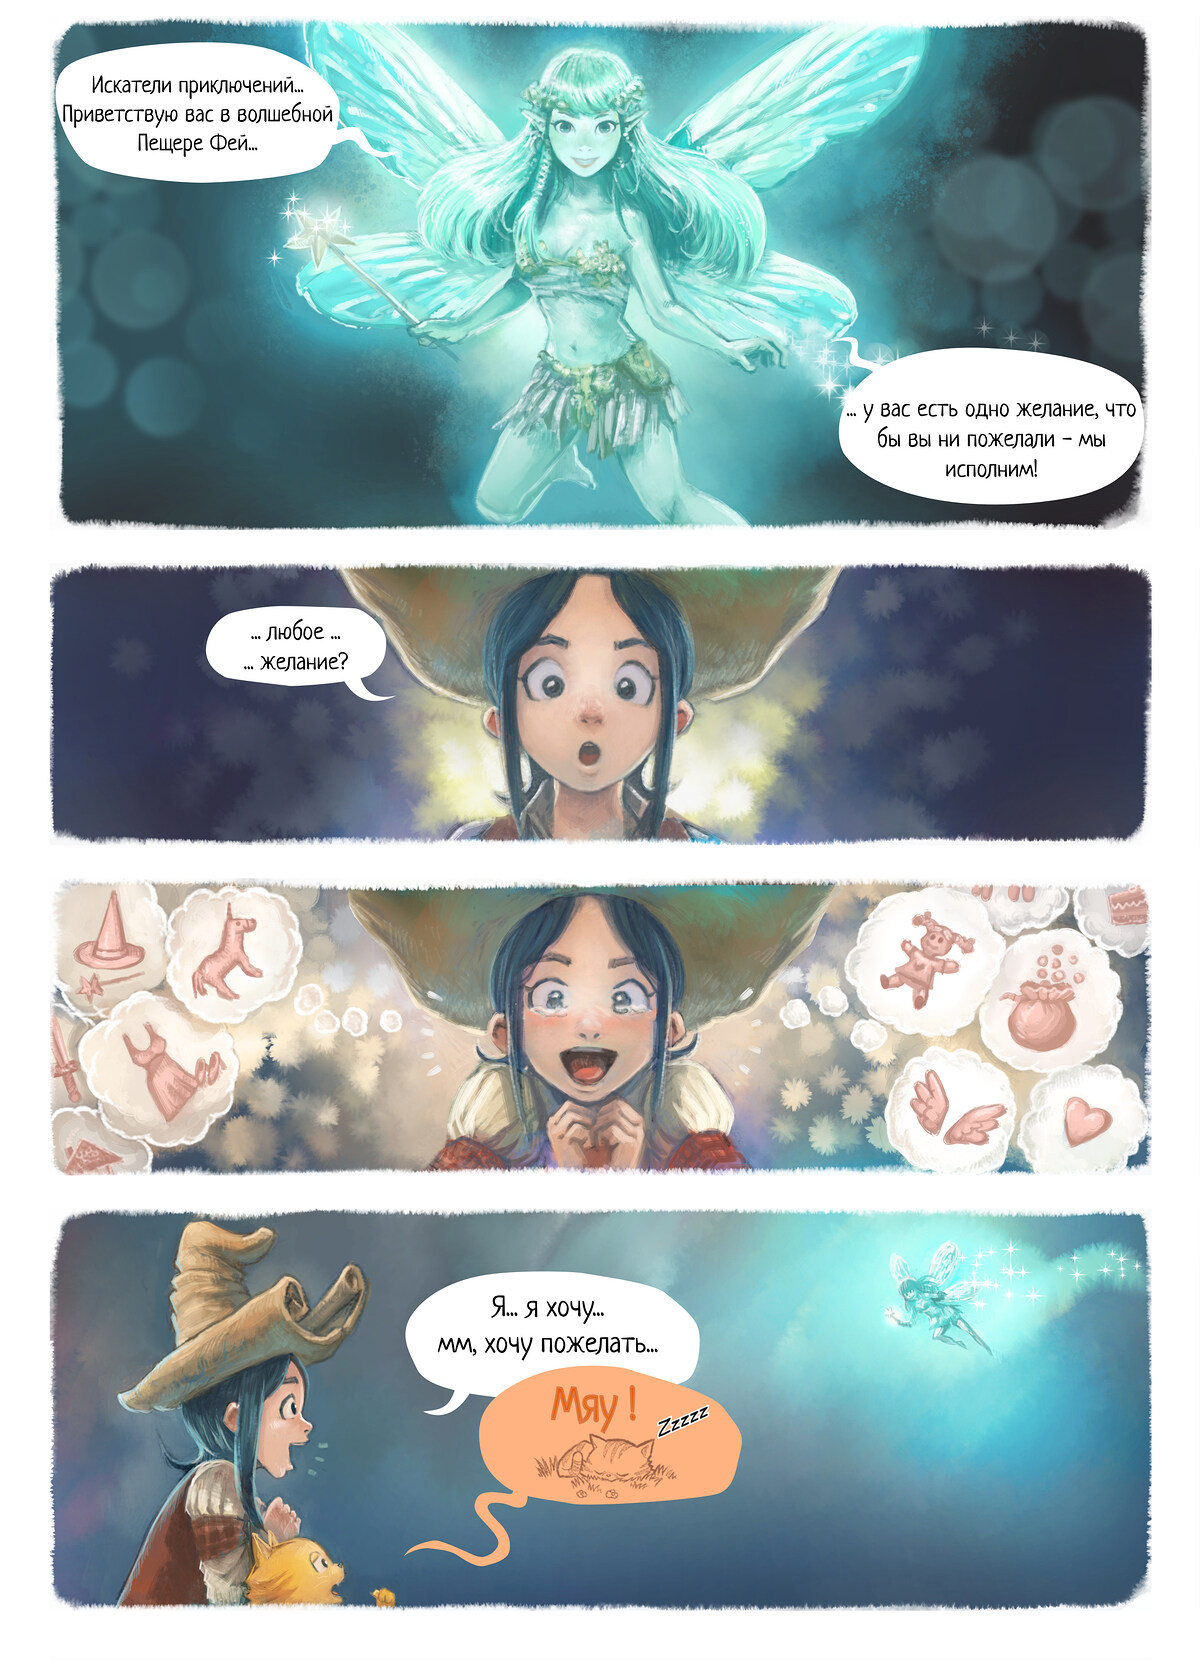 A webcomic page of Pepper&Carrot, эпизод 7 [ru], стр. 4